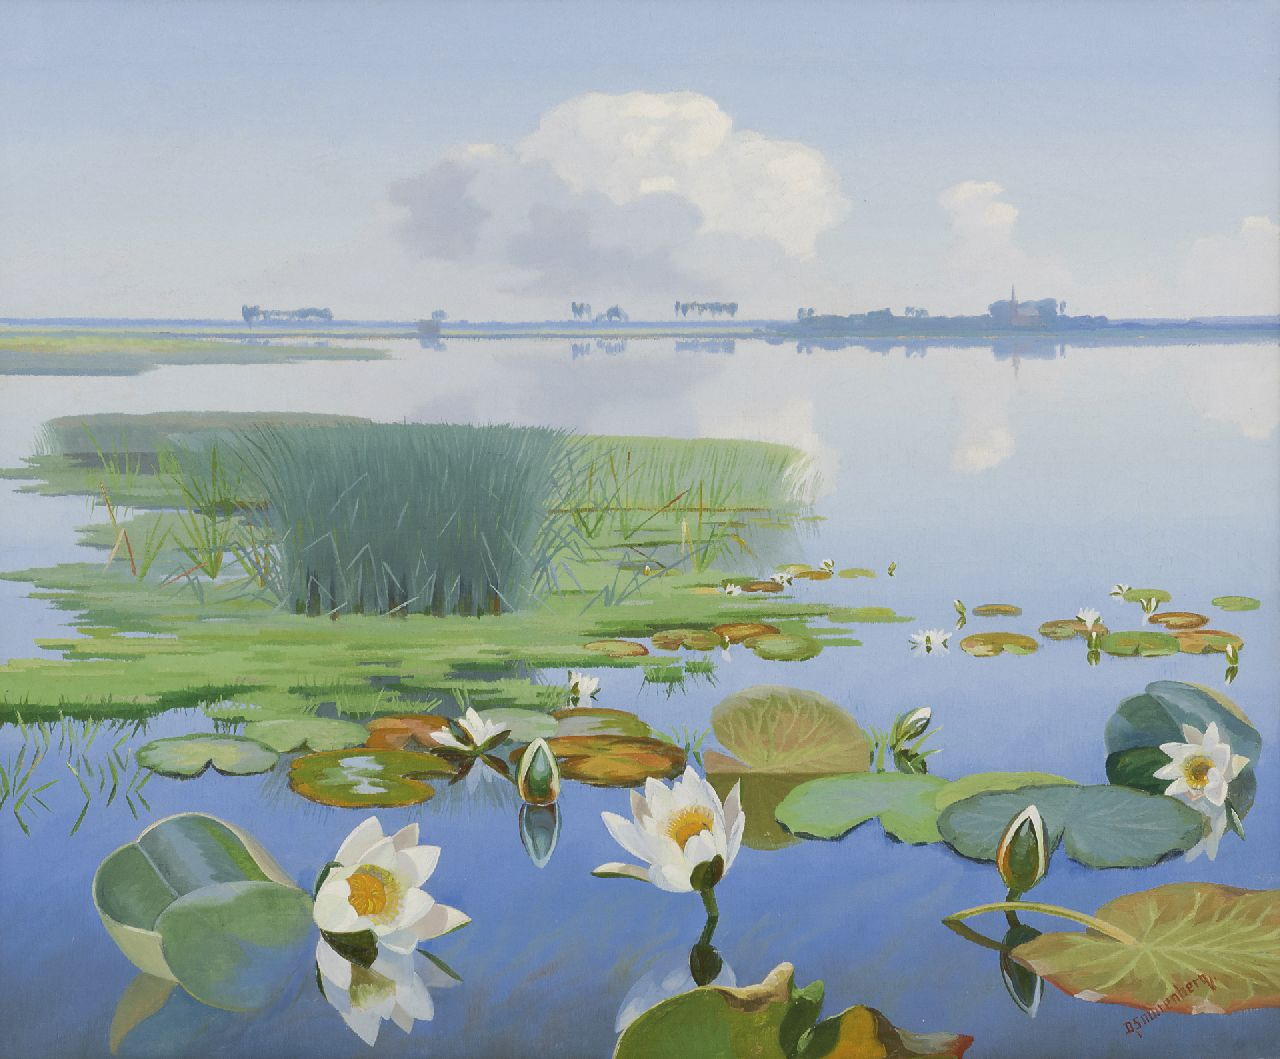 Smorenberg D.  | Dirk Smorenberg, Waterlillies in the  Loosdrechtse Plassen, oil on canvas 50.2 x 60.3 cm, signed l.r.